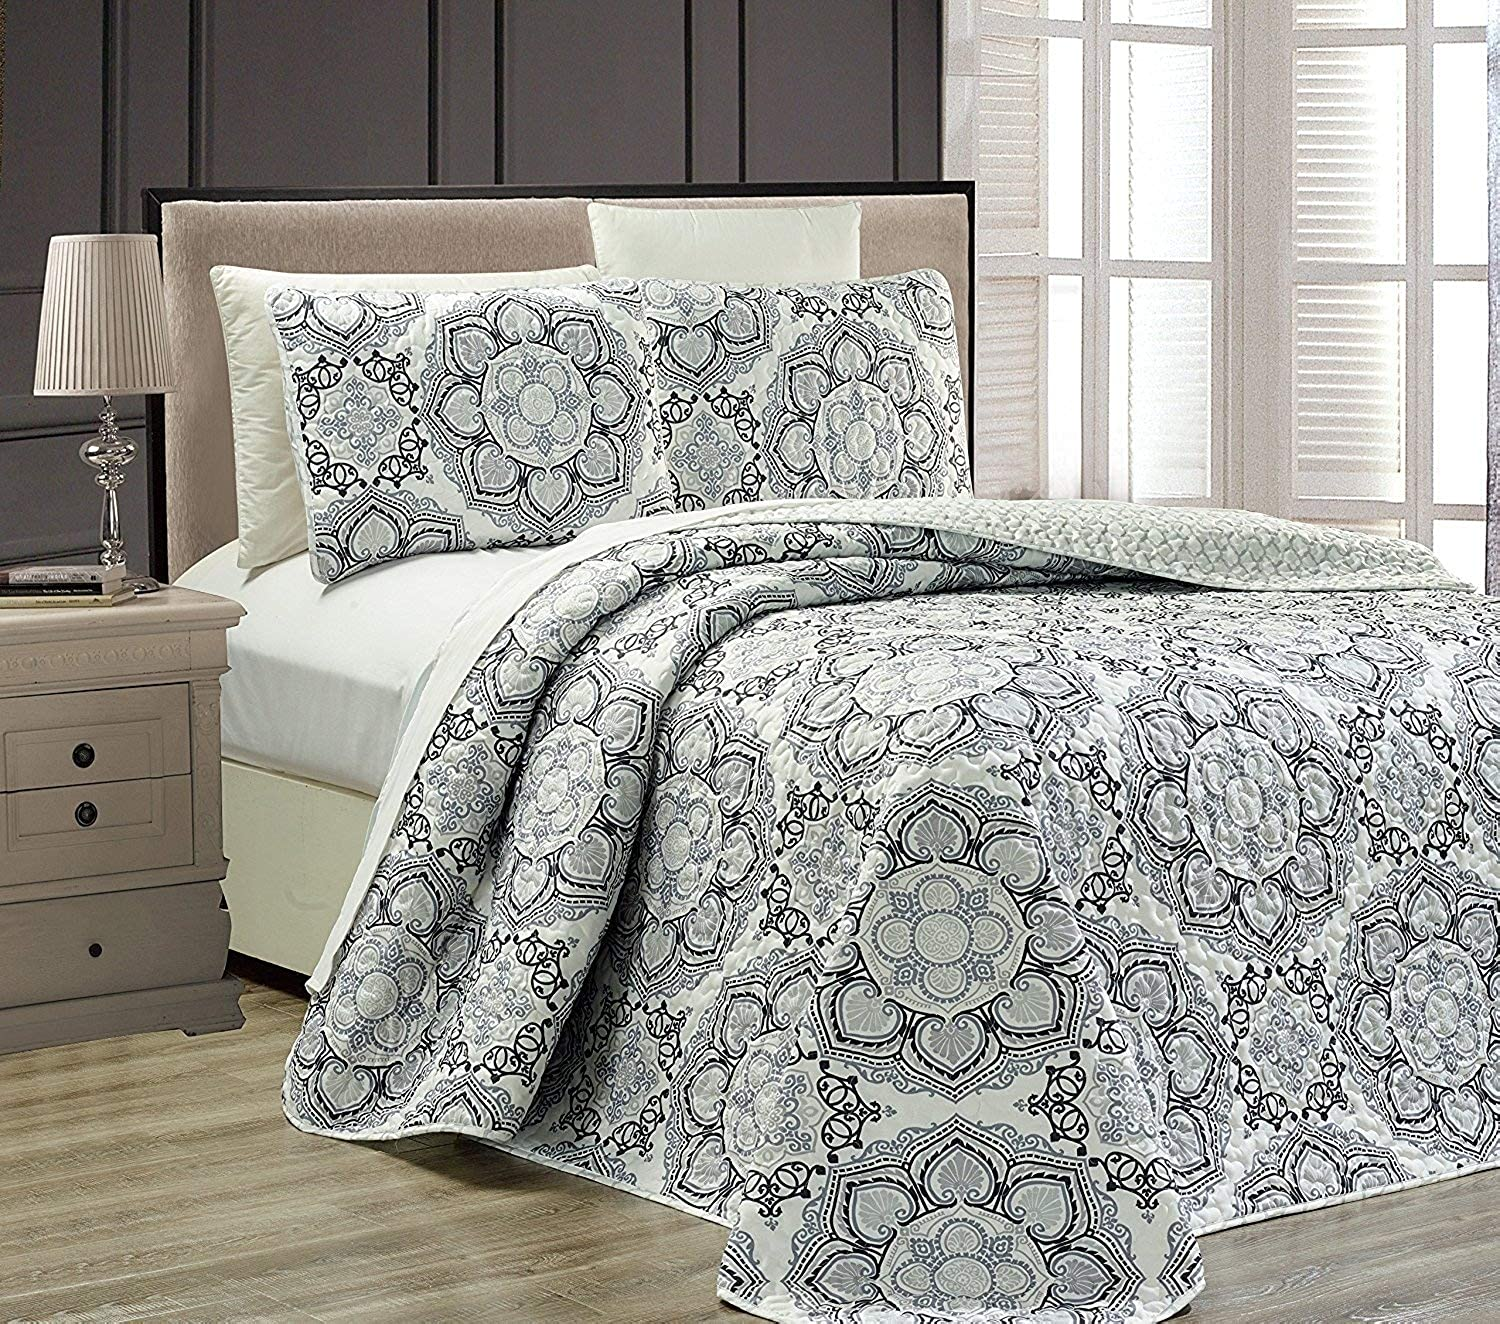 Fancy Collection 3 pc Bedspread Bed Cover Modern Reversible White Grey Black New  Linda Grey King California King Over Size 118  x 95